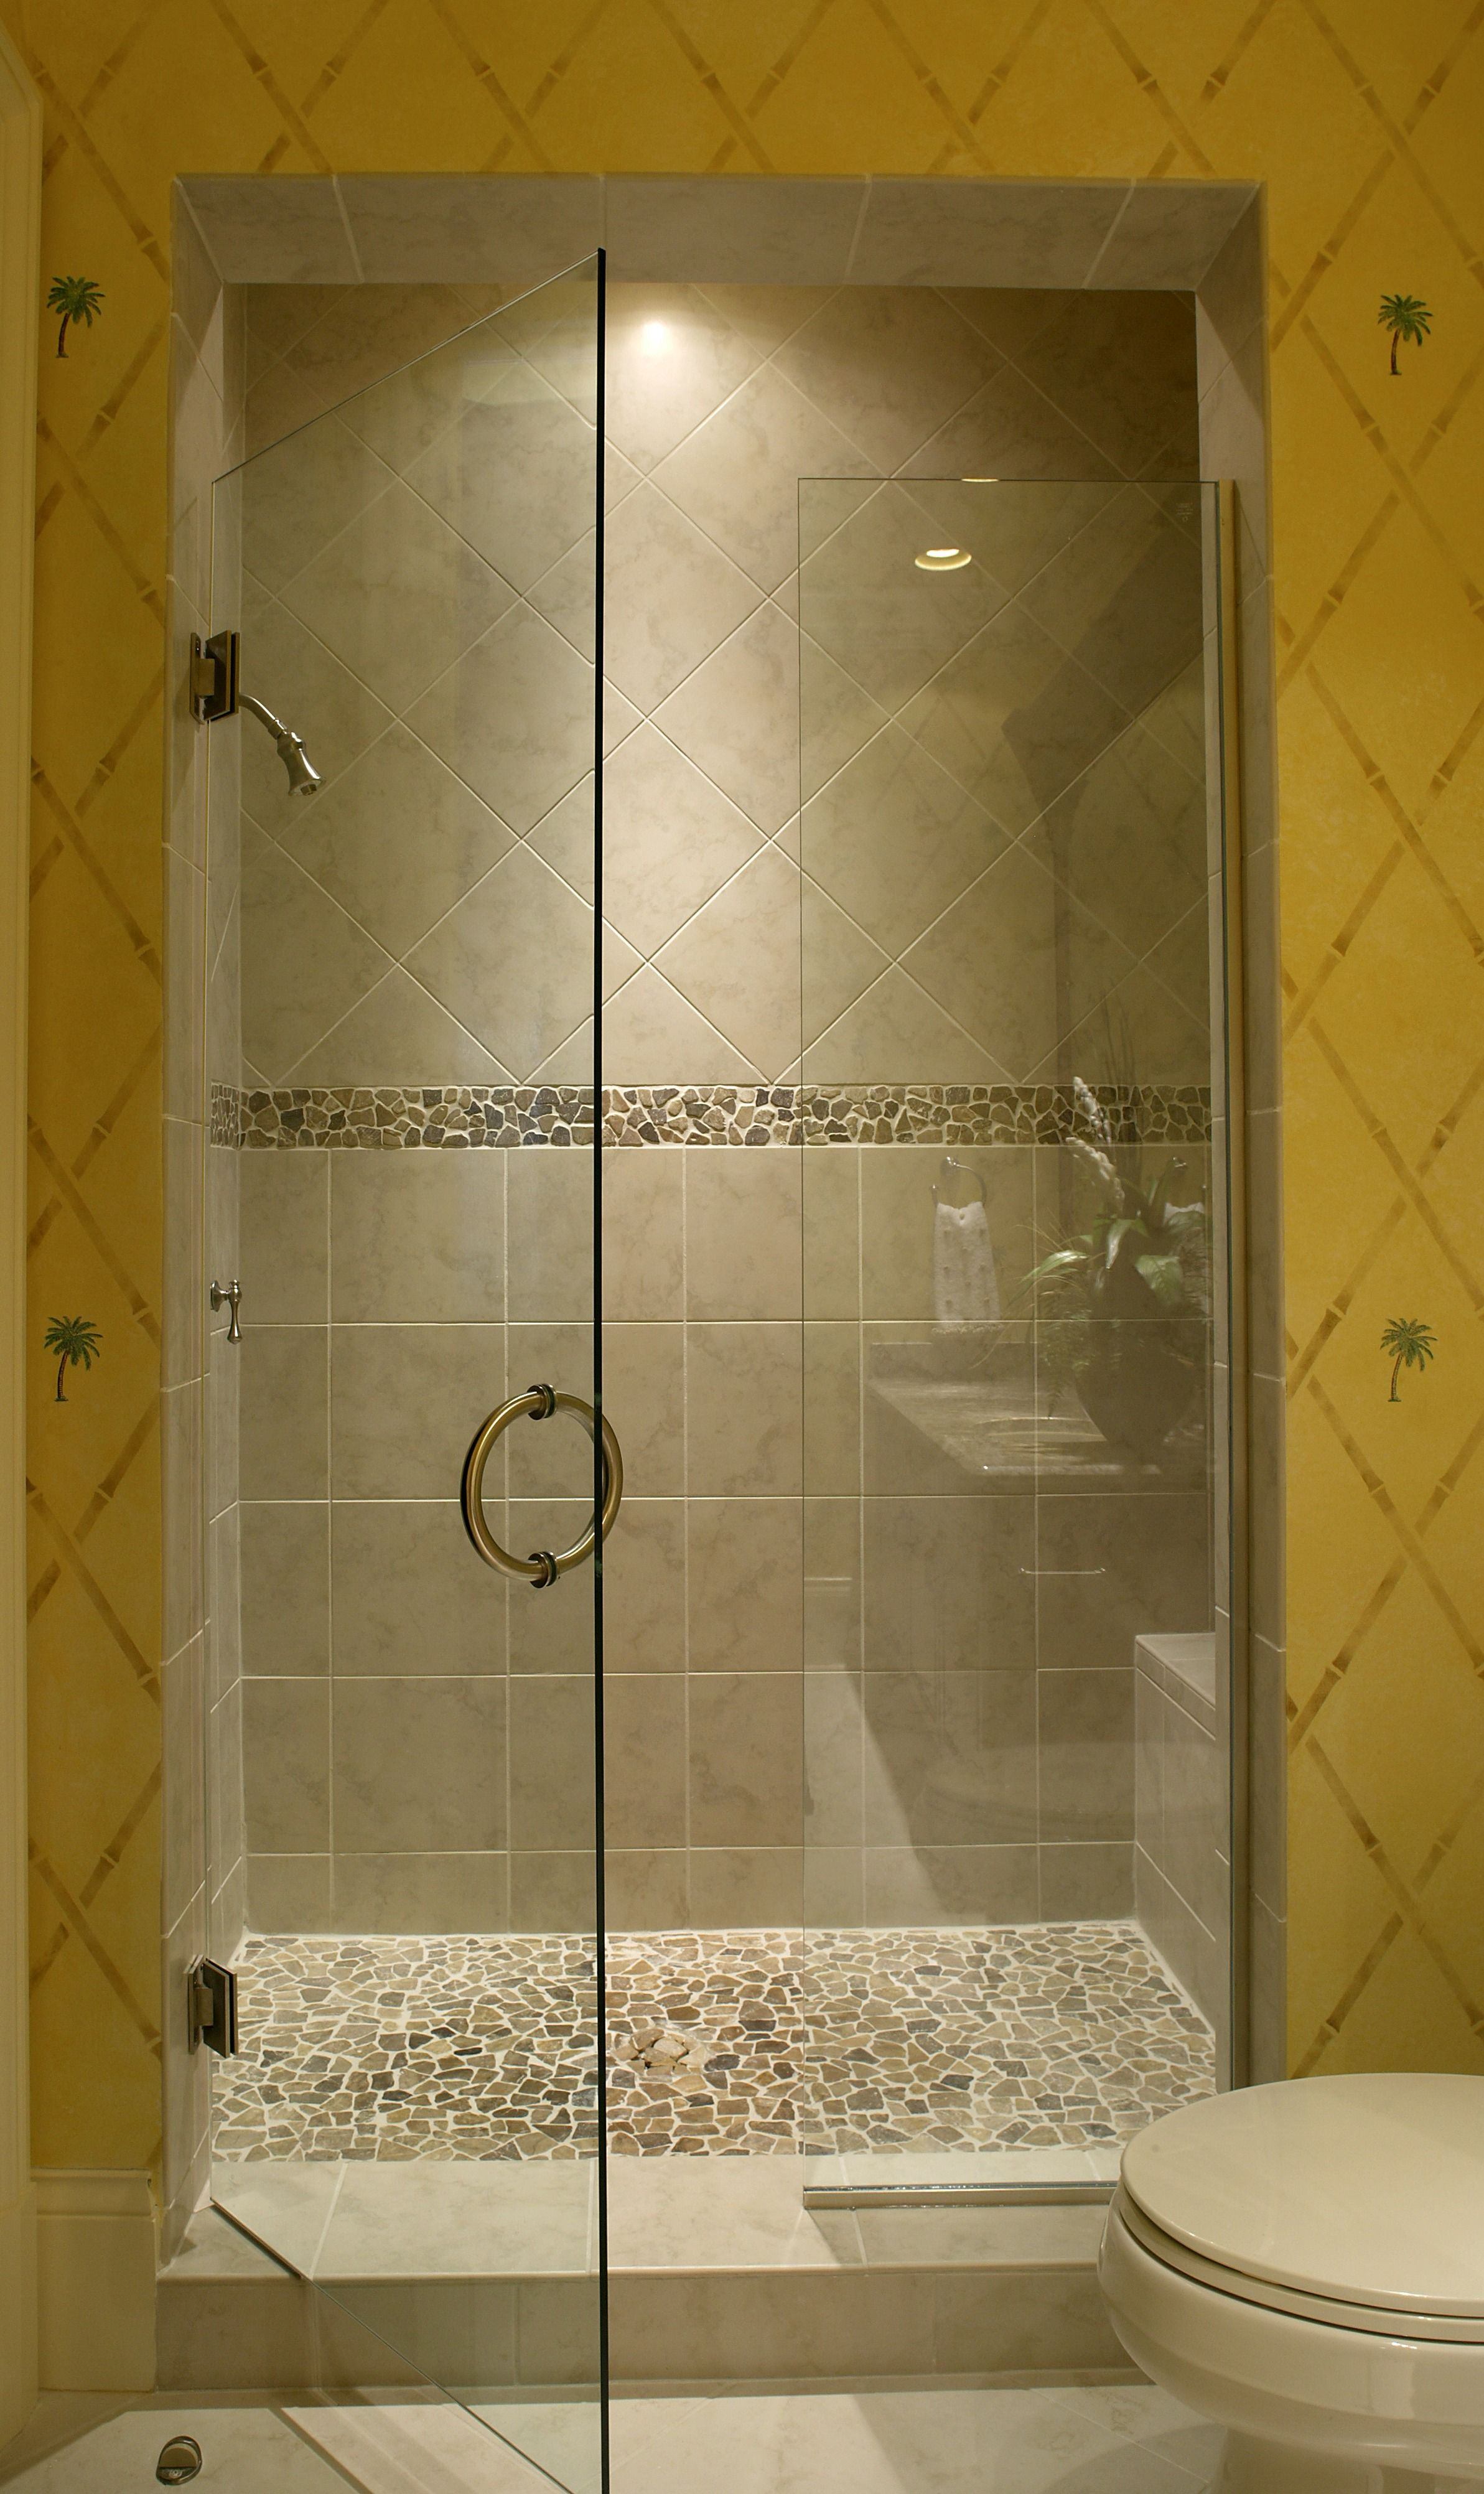 Bathroom Remodel Return On Investment Guide  Shower Doors Mesmerizing Bathroom Remodel Return On Investment Inspiration